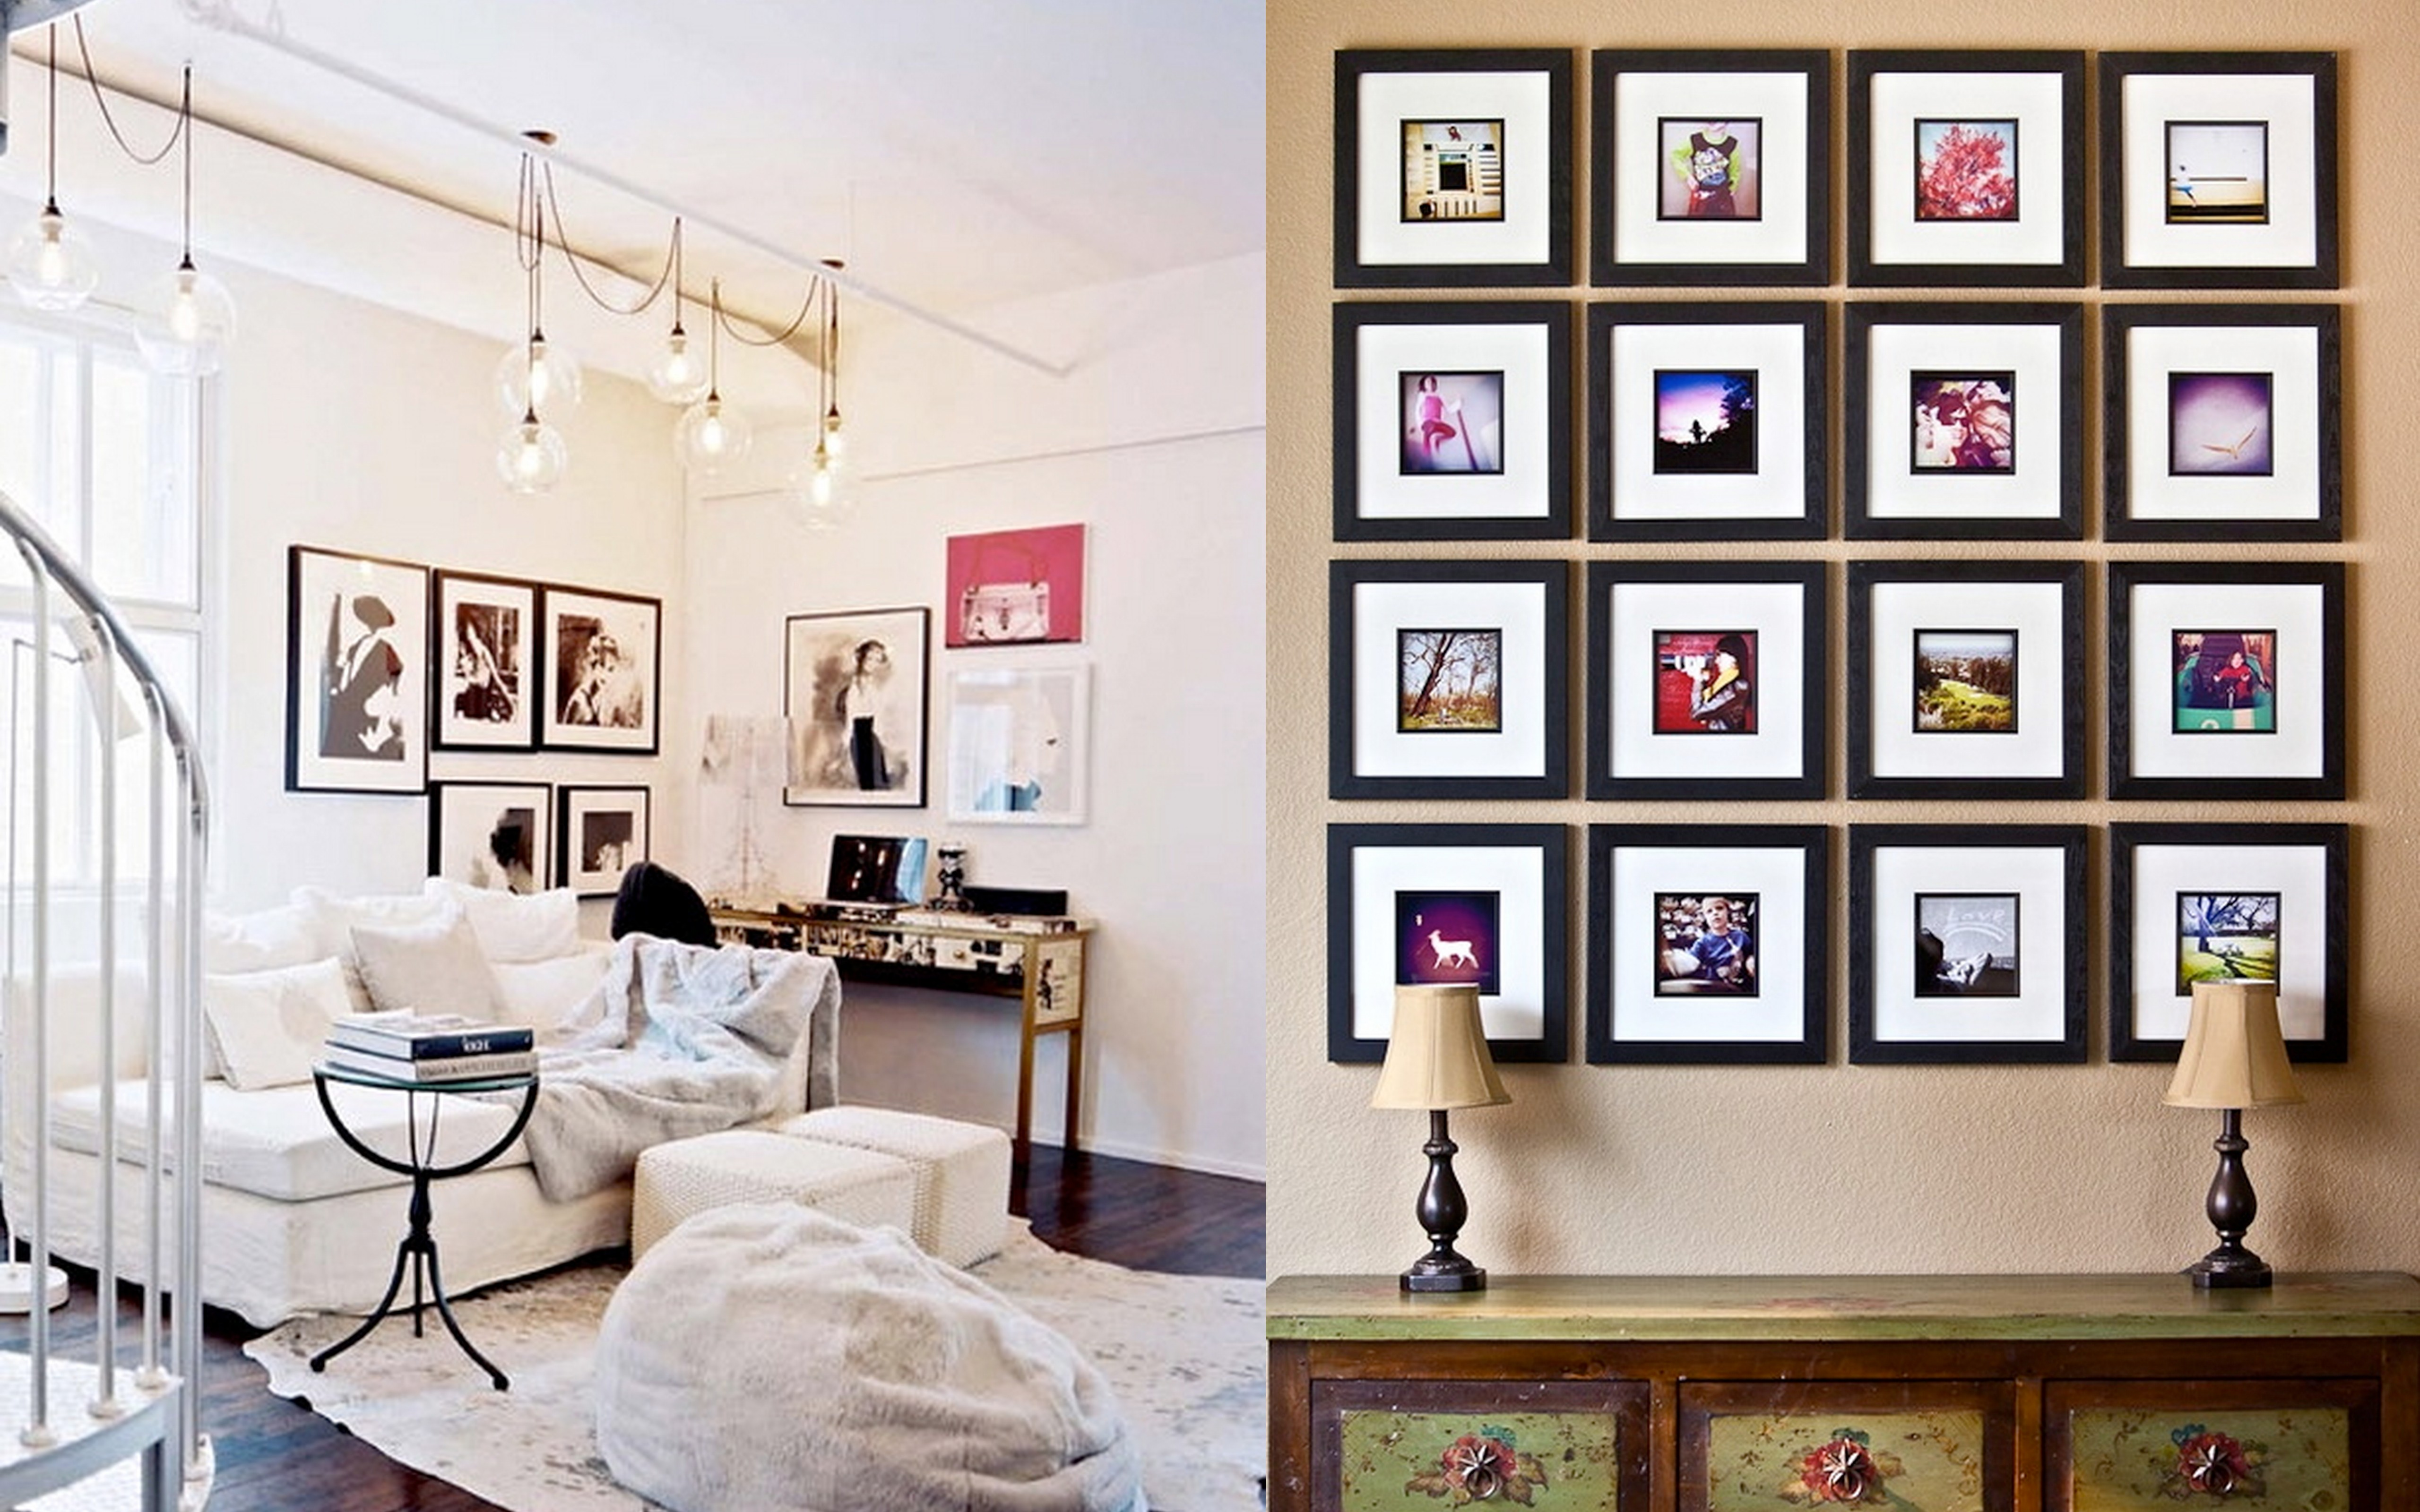 Likeable Wall Picture Frames For Living Room Of Product Photos Art Designs Works Wide Ranging